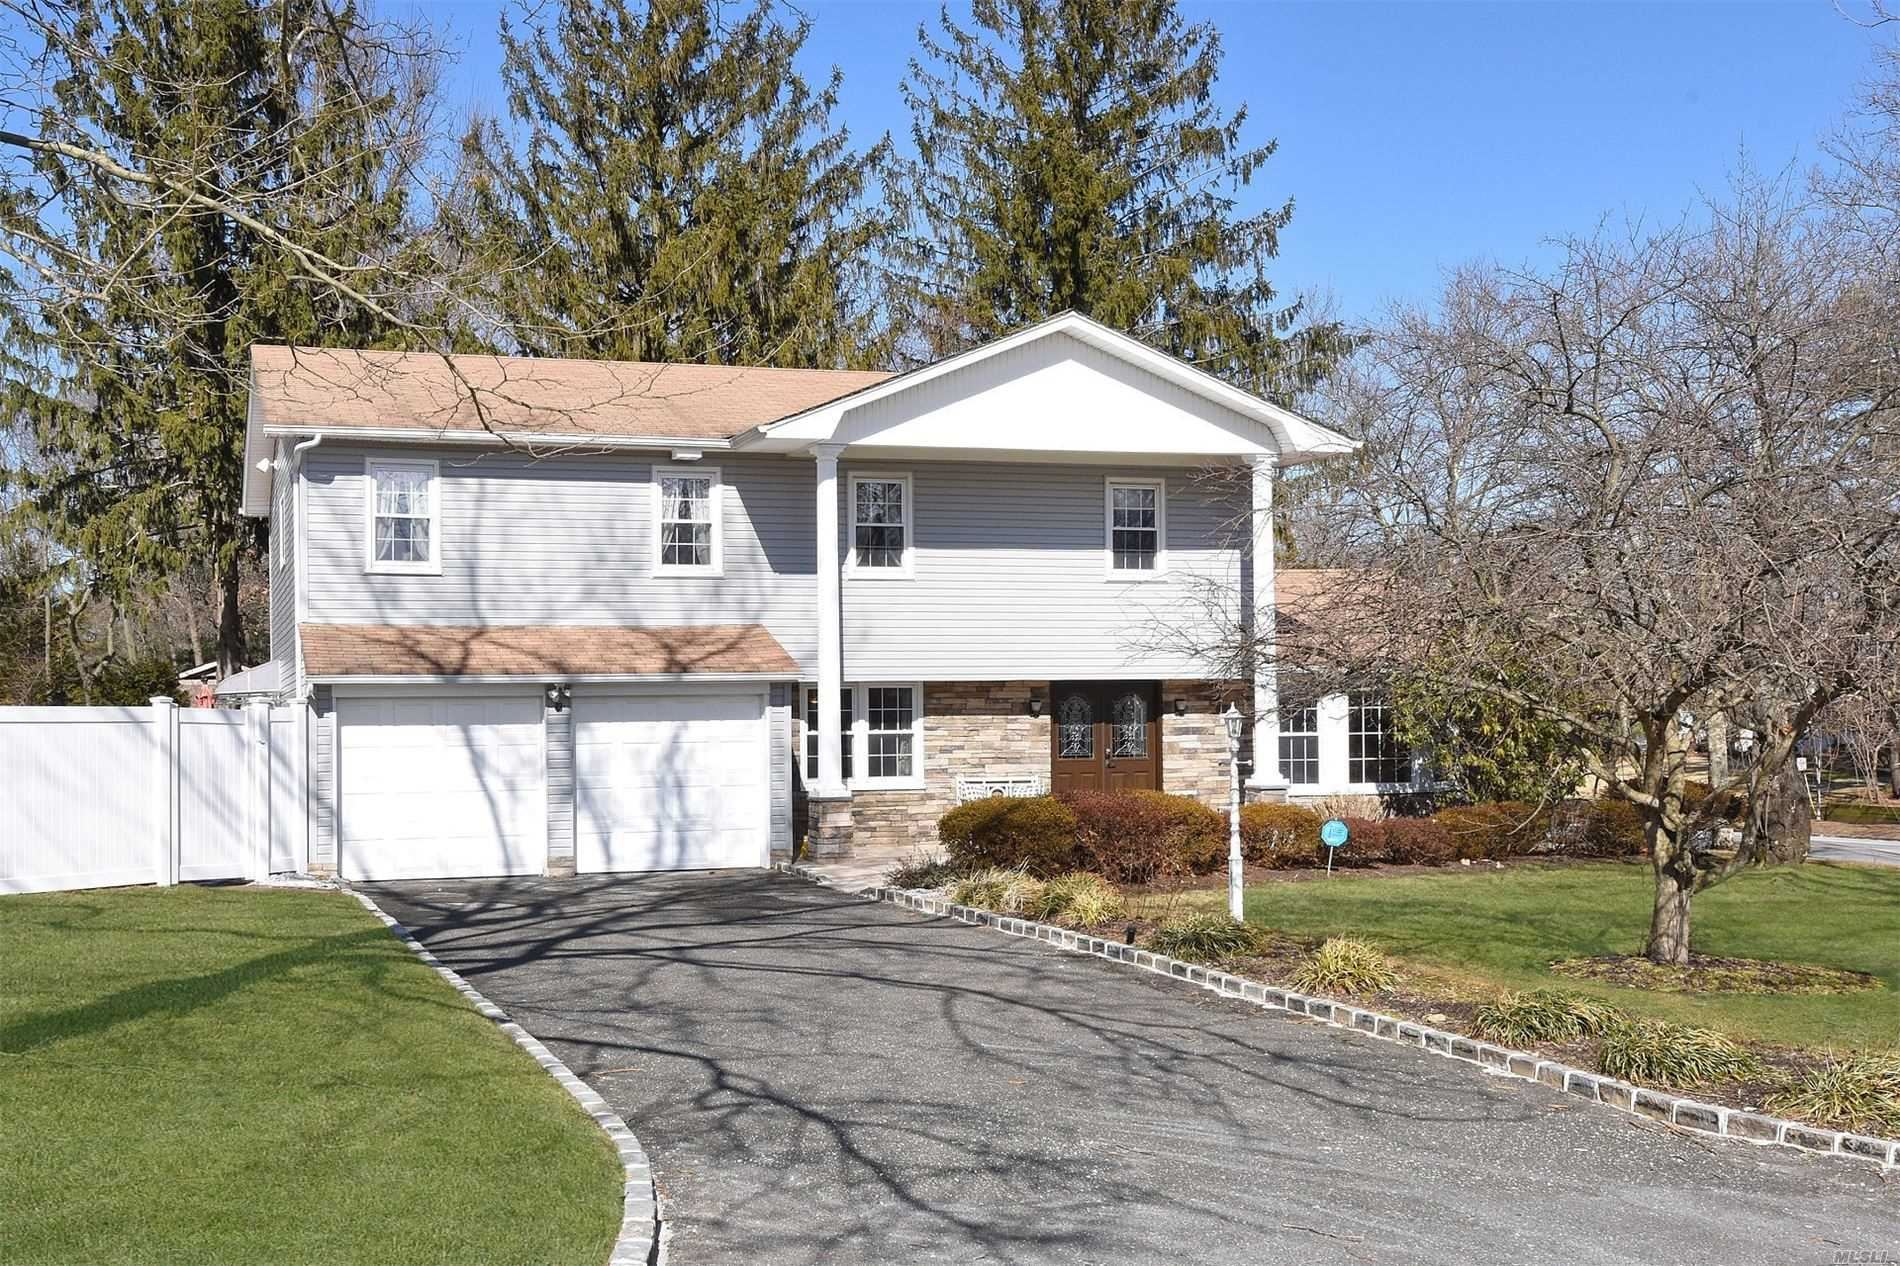 83 Cornflower Lane, East Northport, NY 11731 - MLS#: 3247495